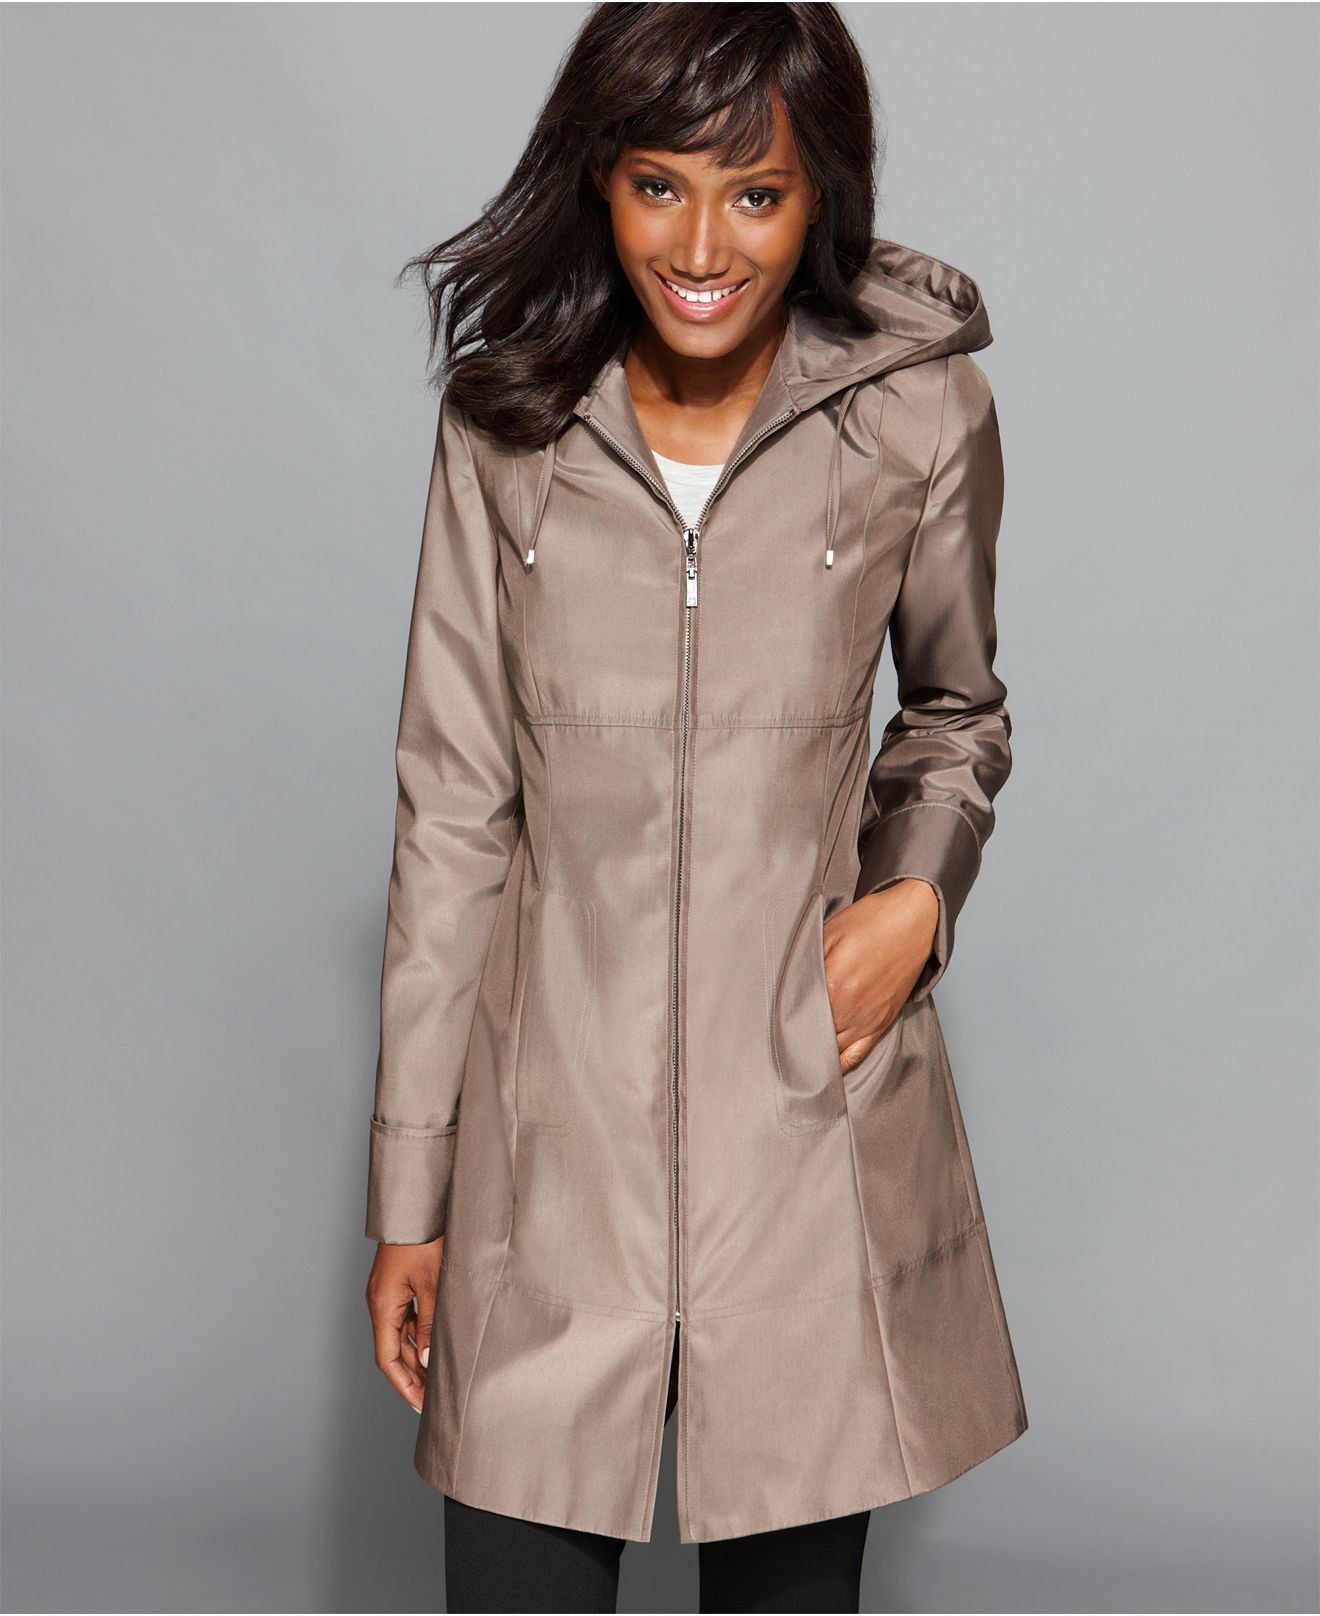 womens rain coat with hood | Womens Coats | Pinterest | Rain coats ...